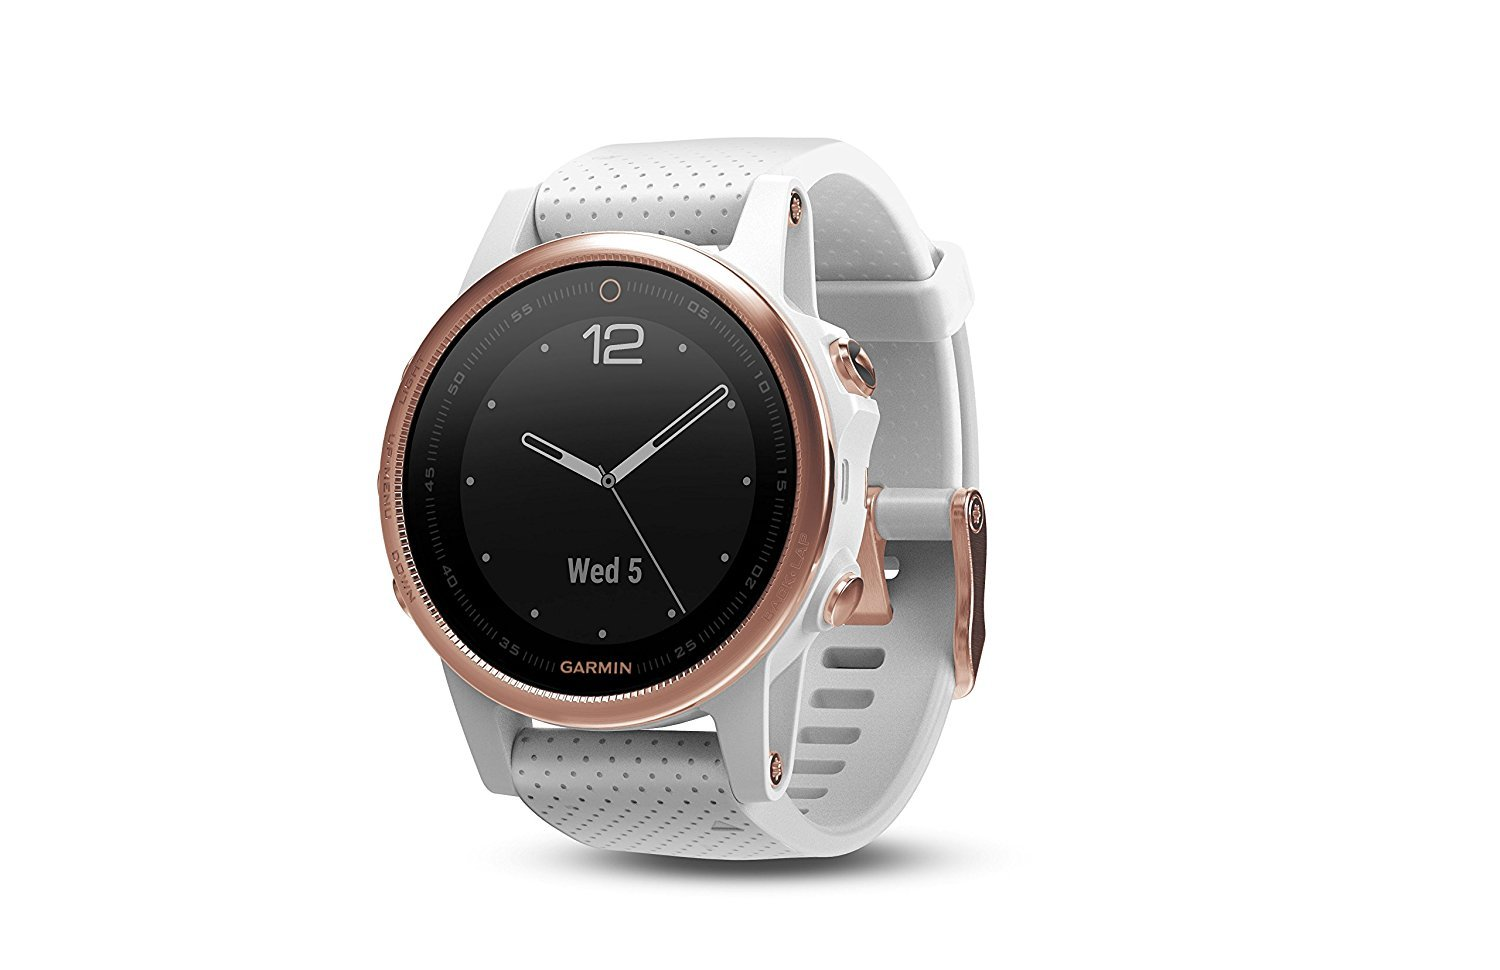 Garmin Fenix 5S - Sapphire, (Rose Gold/White Band) Bundle with PowerBank + USB Car Charger + USB Wall Charger (4 Items) by E Zee Electronics (Image #3)